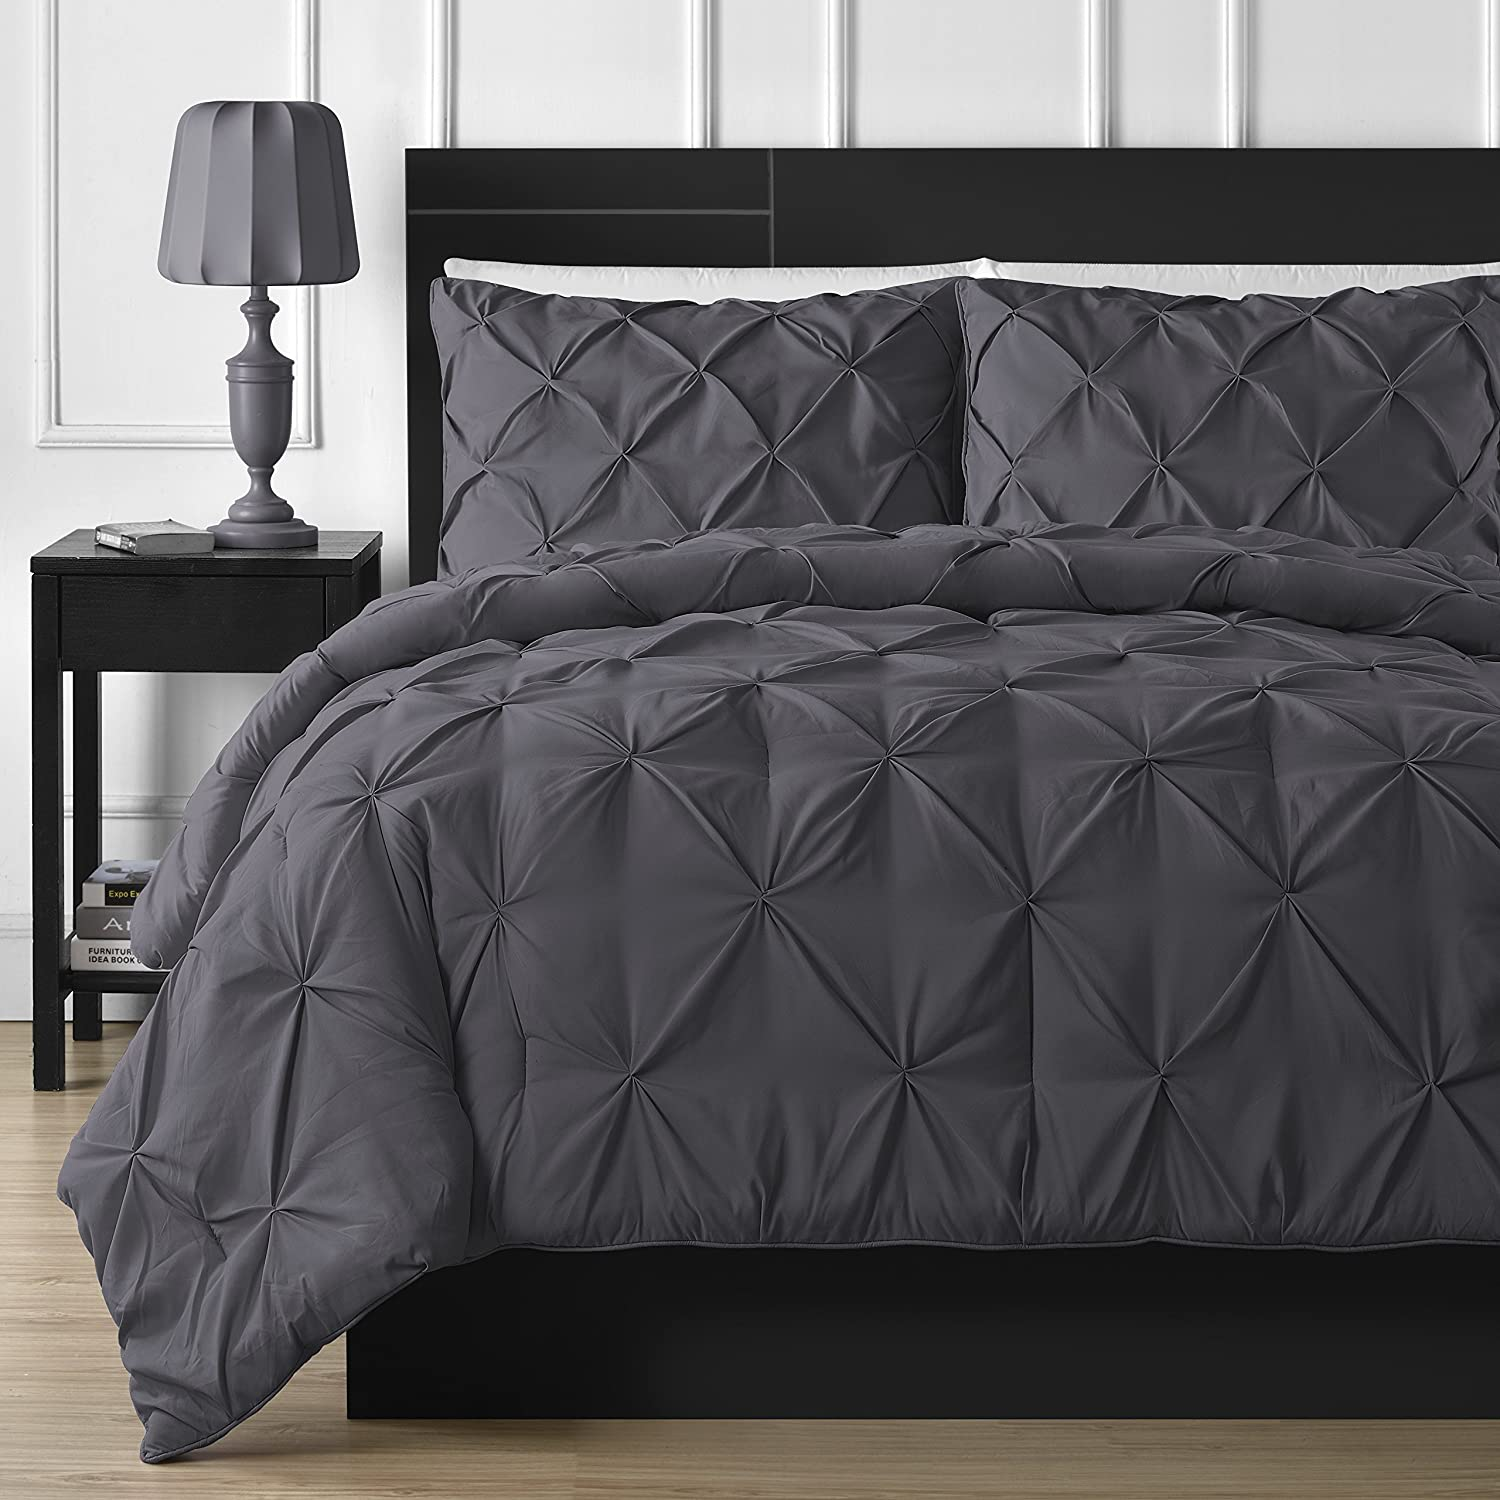 Double-Needle Durable Stitching Comfy Bedding 3-piece Pinch Pleat Comforter Set (Full, Gray